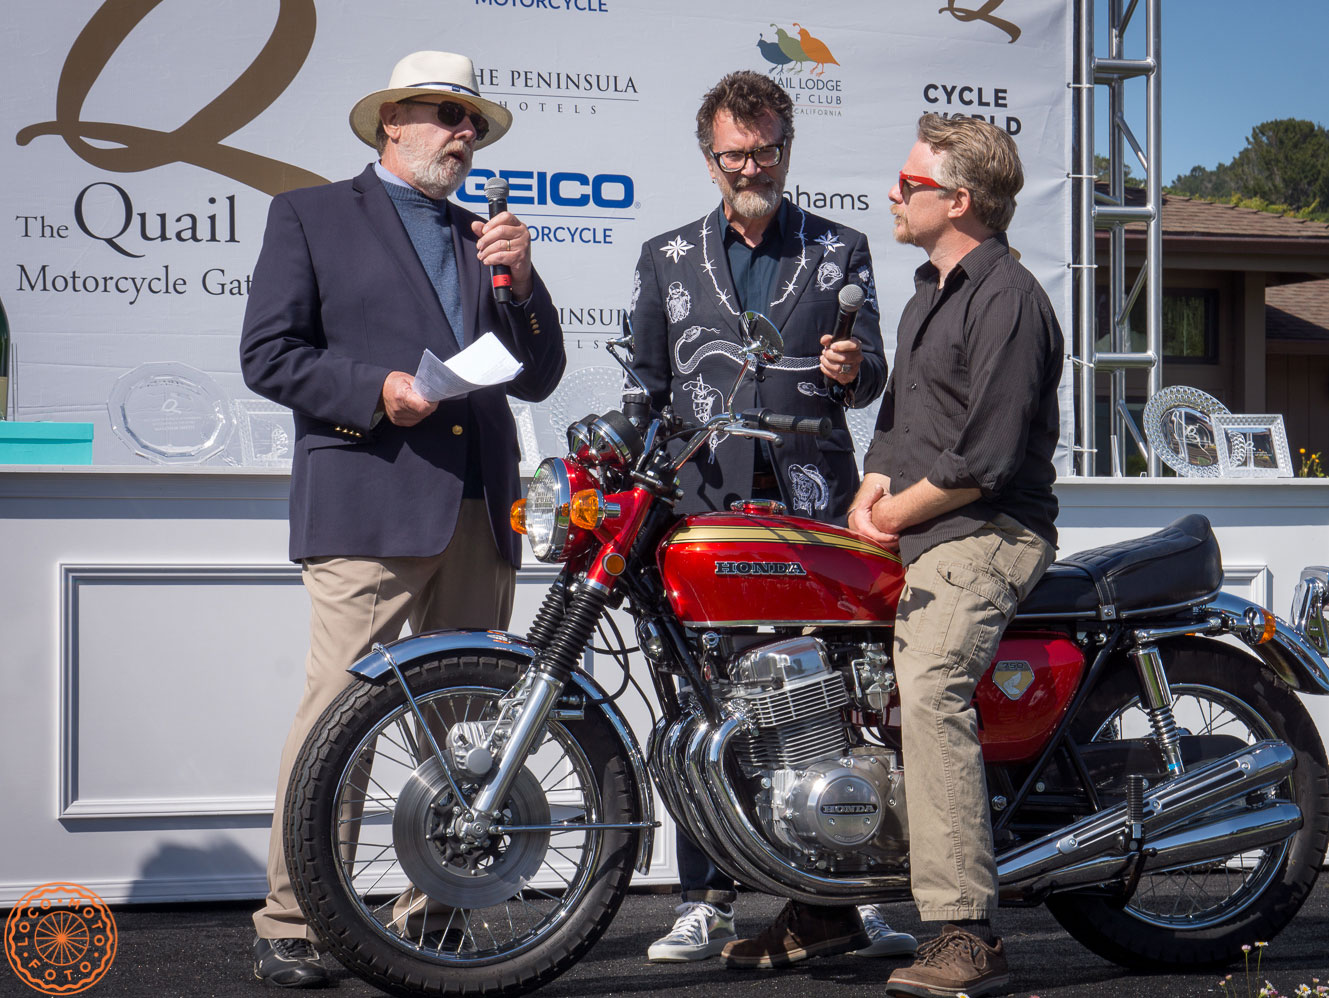 Receiving the Best of Show Award at teh 2019 Quail Motorcycle Gathering